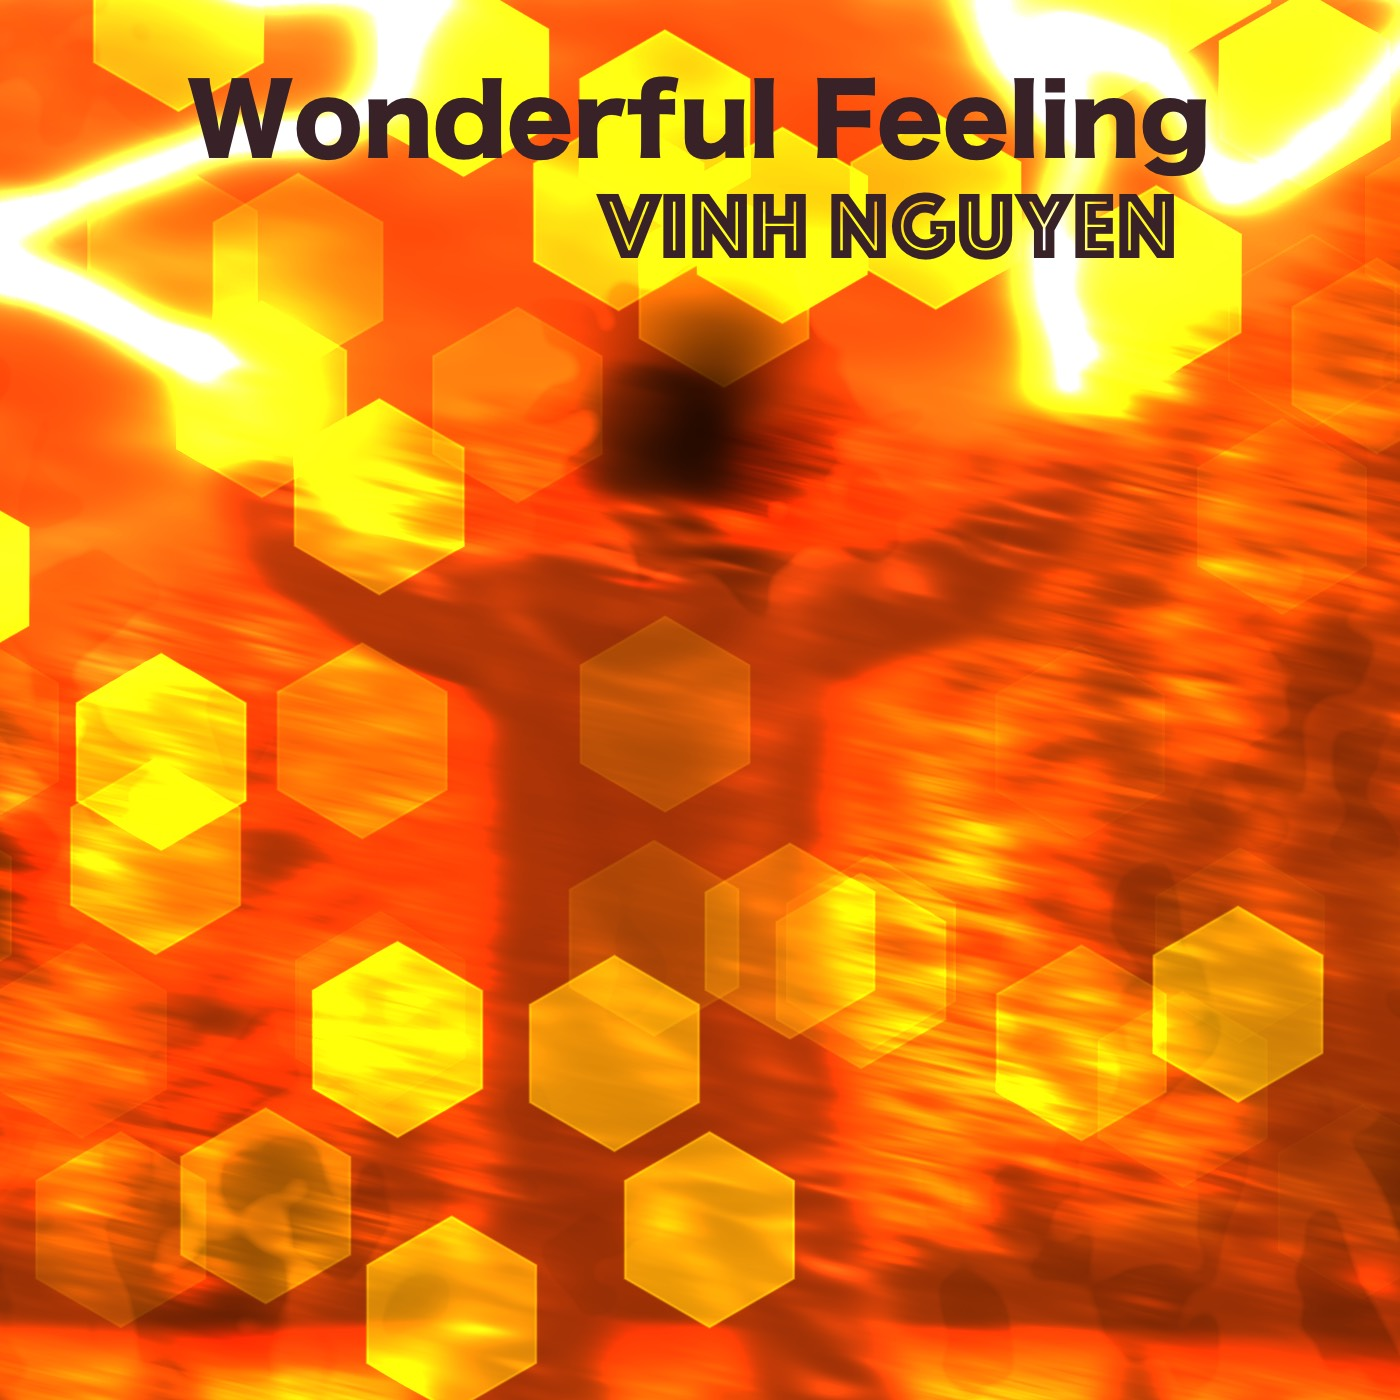 wonderful-feeling-music-cover-art-70per-jpg-x1